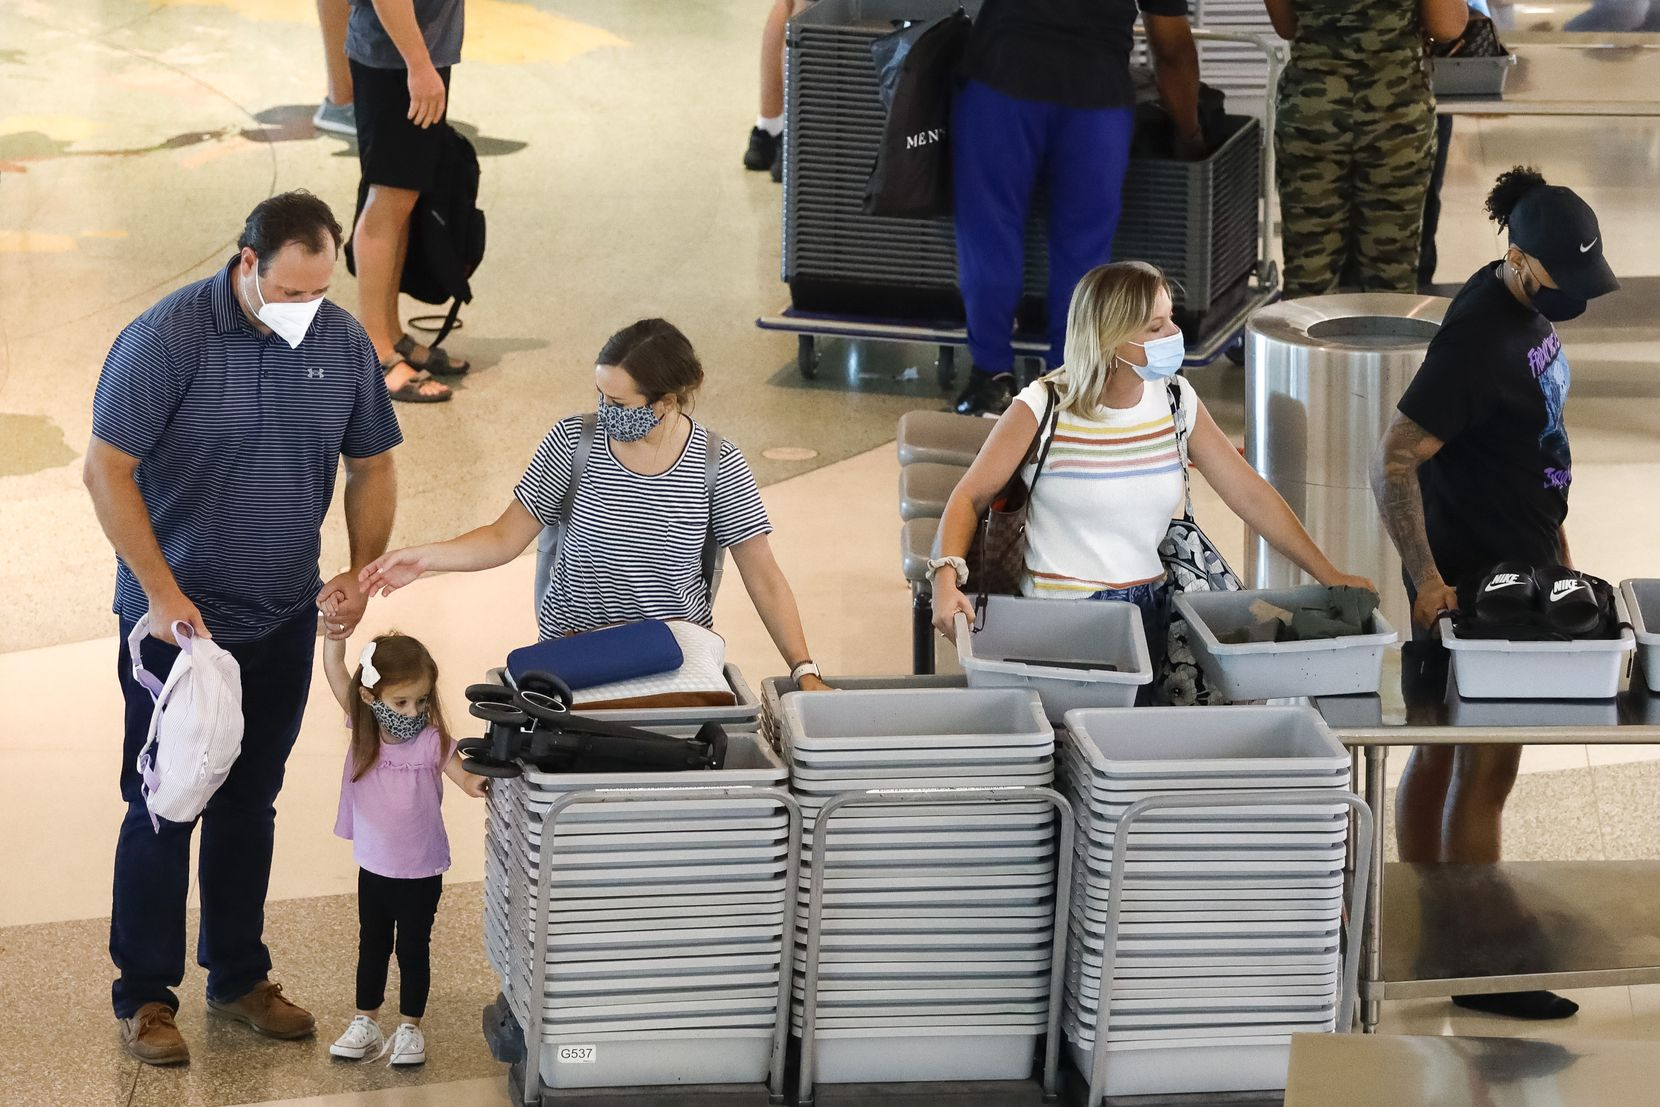 Travelers load their belongings into containers at a security checkpoint at Dallas Love Field. That's one of the changes resulting from the 2001 terrorist attacks.